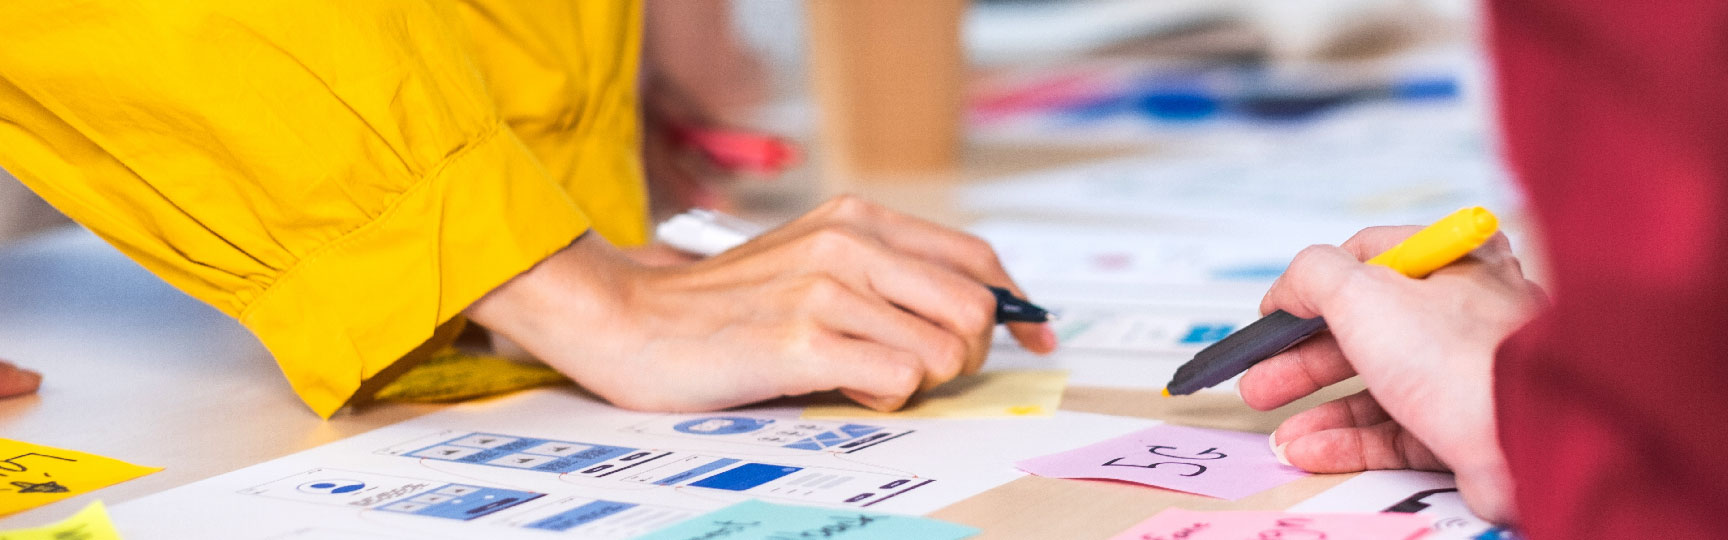 5 Ways Your Business Can Use Graphic Design Effectively